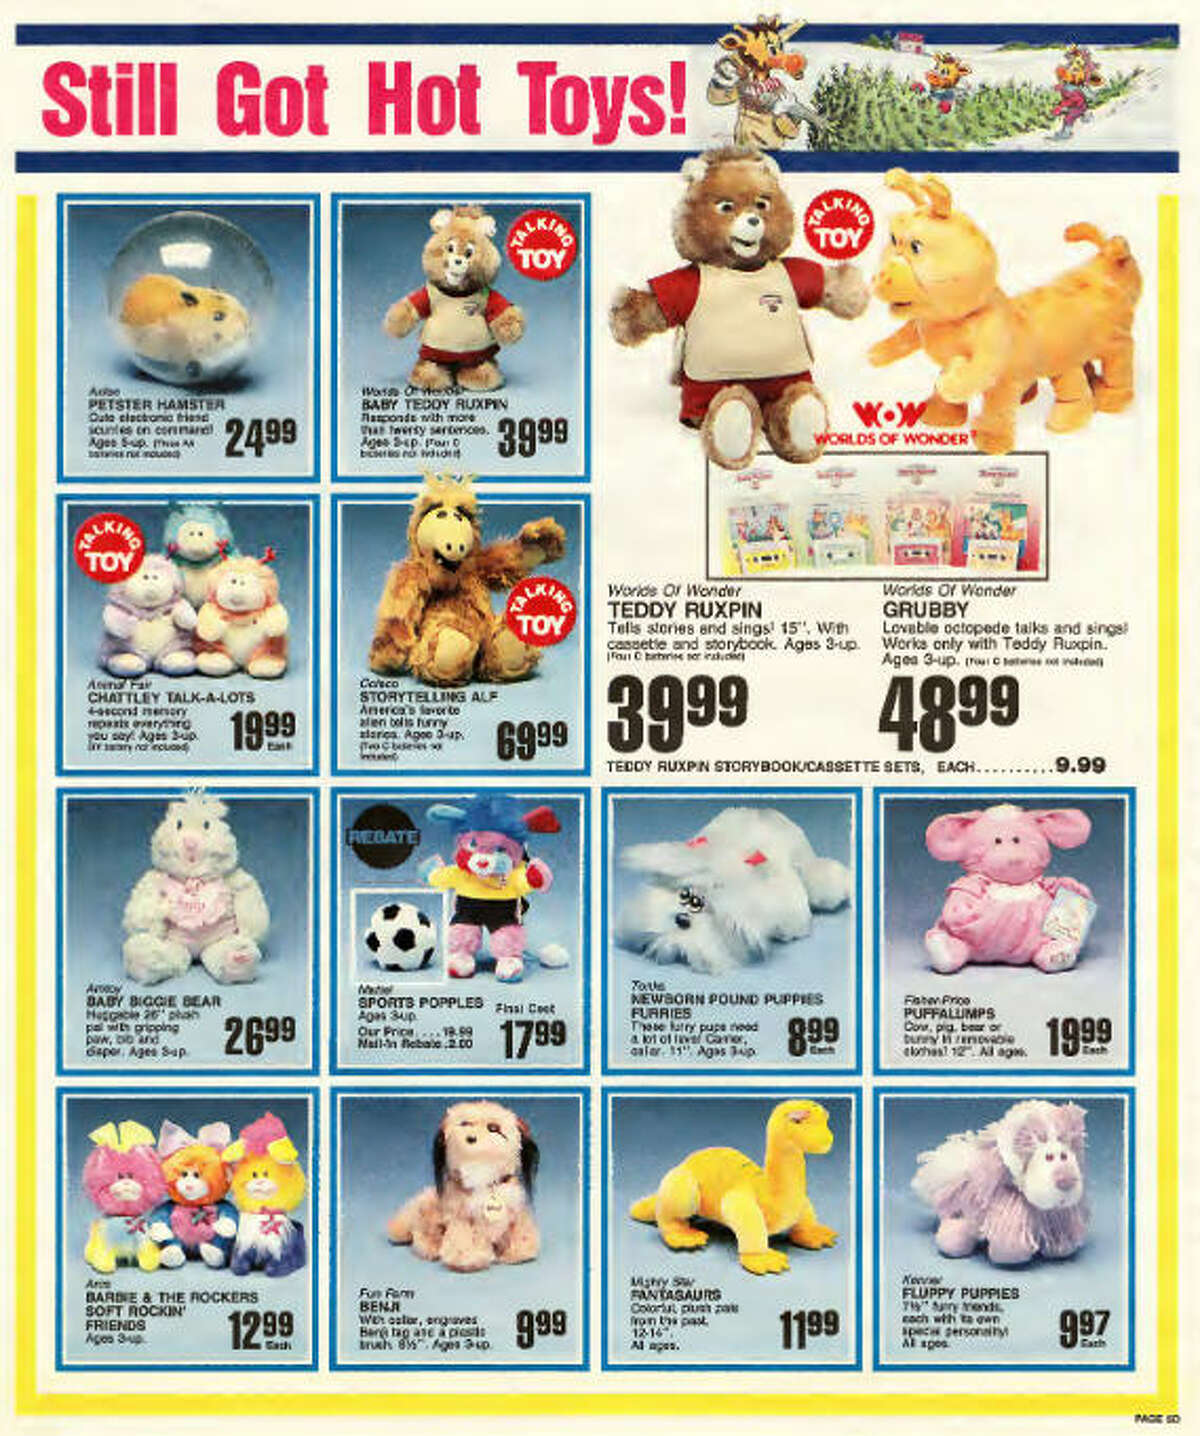 VINTAGE ADS: See the hottest toys from the 1987 Toys 'R' Us' holiday catalog ... A user on the website Archive.org has scanned in a 1987 circular from the holiday season that year, filled with toys that would make millennials swoon for their long-gone childhoods.